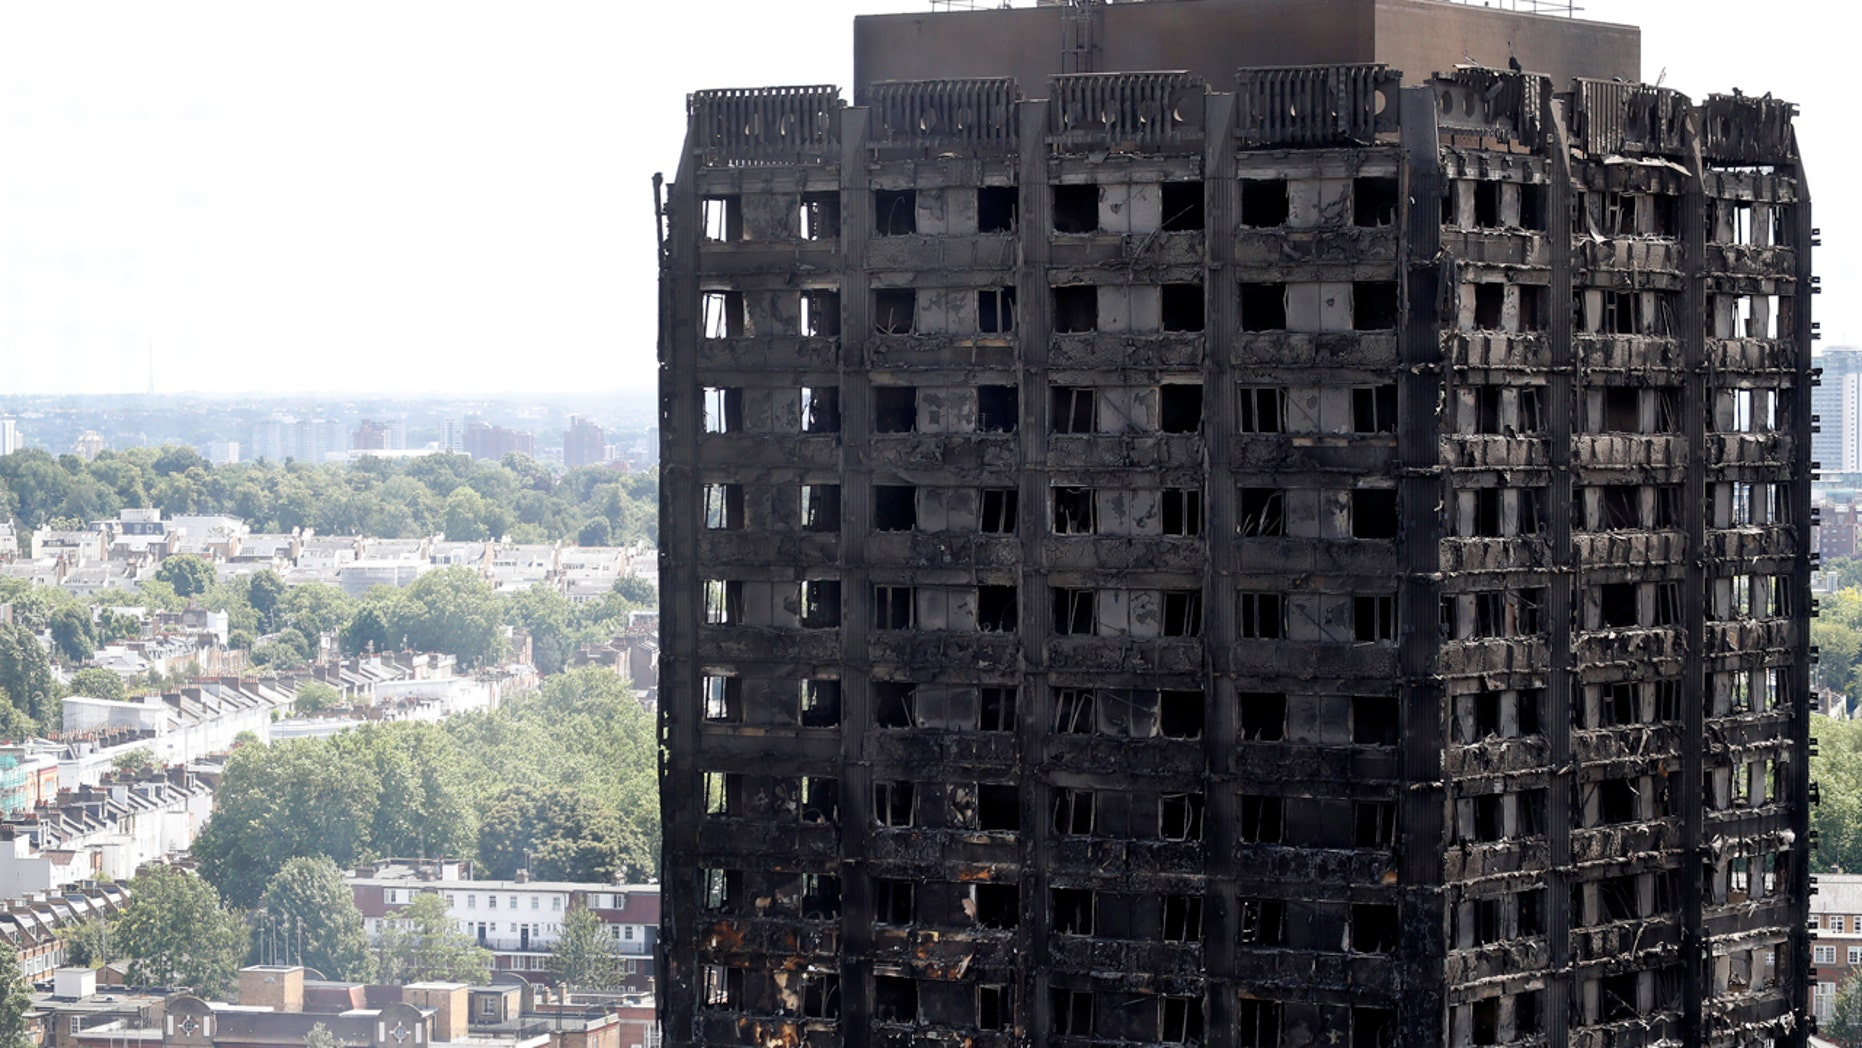 Firemen, left, inspect the scorched facade of the Grenfell Tower in London, Thursday, June 15, 2017, after a massive fire raced through the 24-storey high-rise apartment building in west London early Wednesday.  Firefighters are beginning the task of combing through the devastated apartment tower, checking integrity of the structure and searching to find victims.(AP Photo/Frank Augstein)